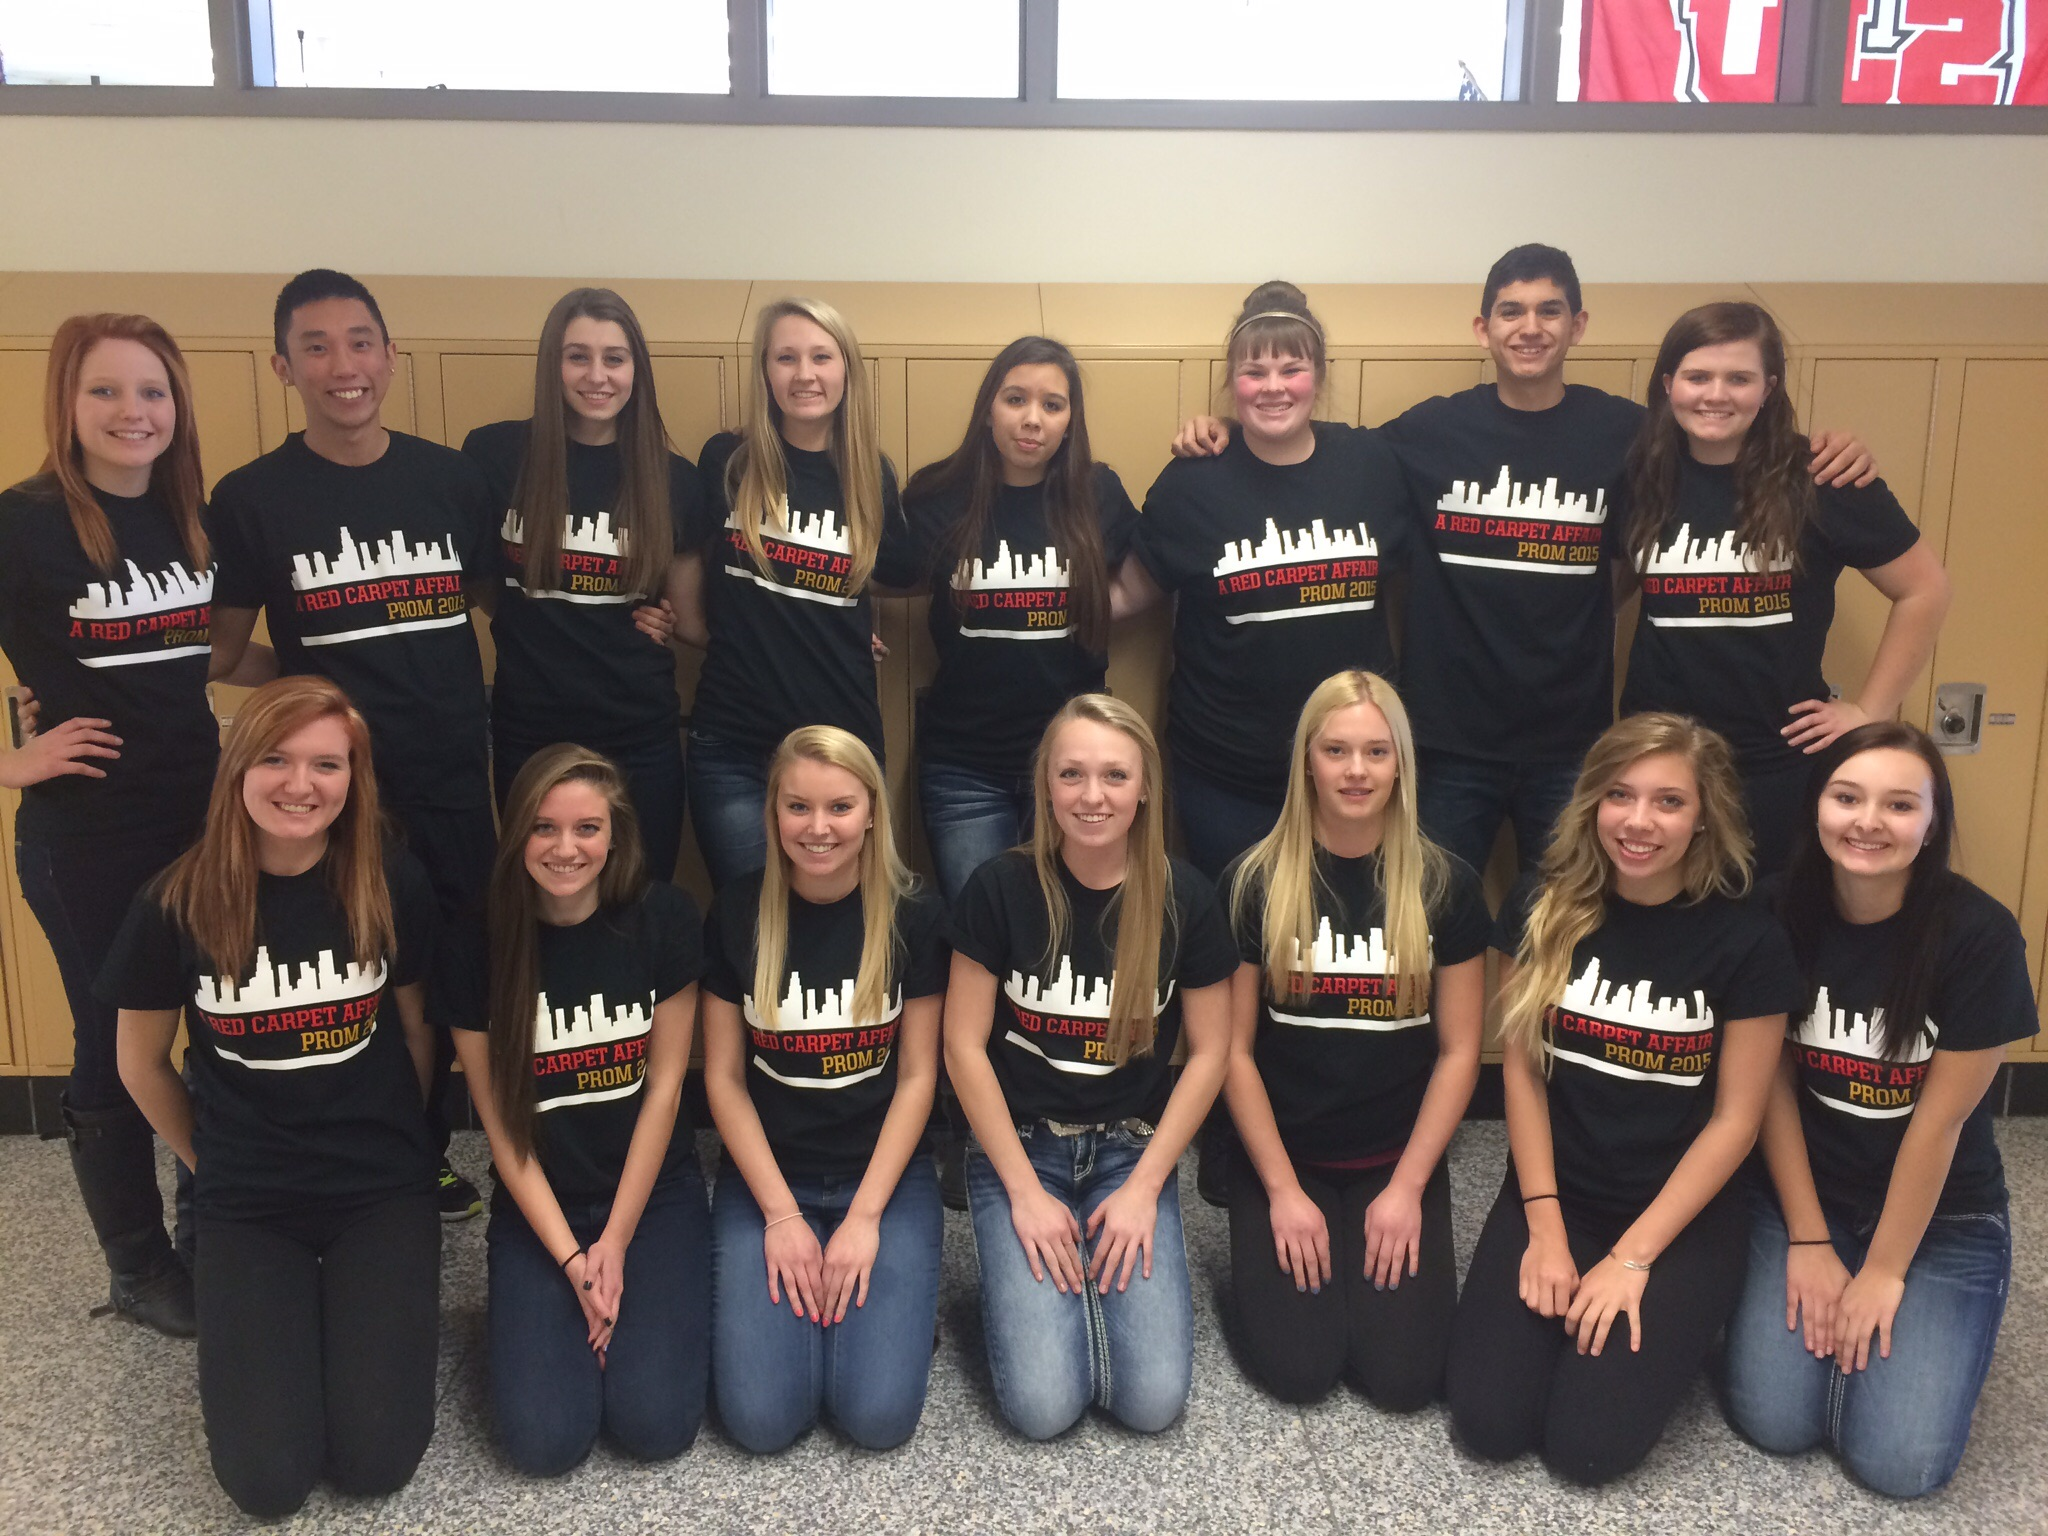 rhs prom committee t shirt photo - Homecoming T Shirt Design Ideas